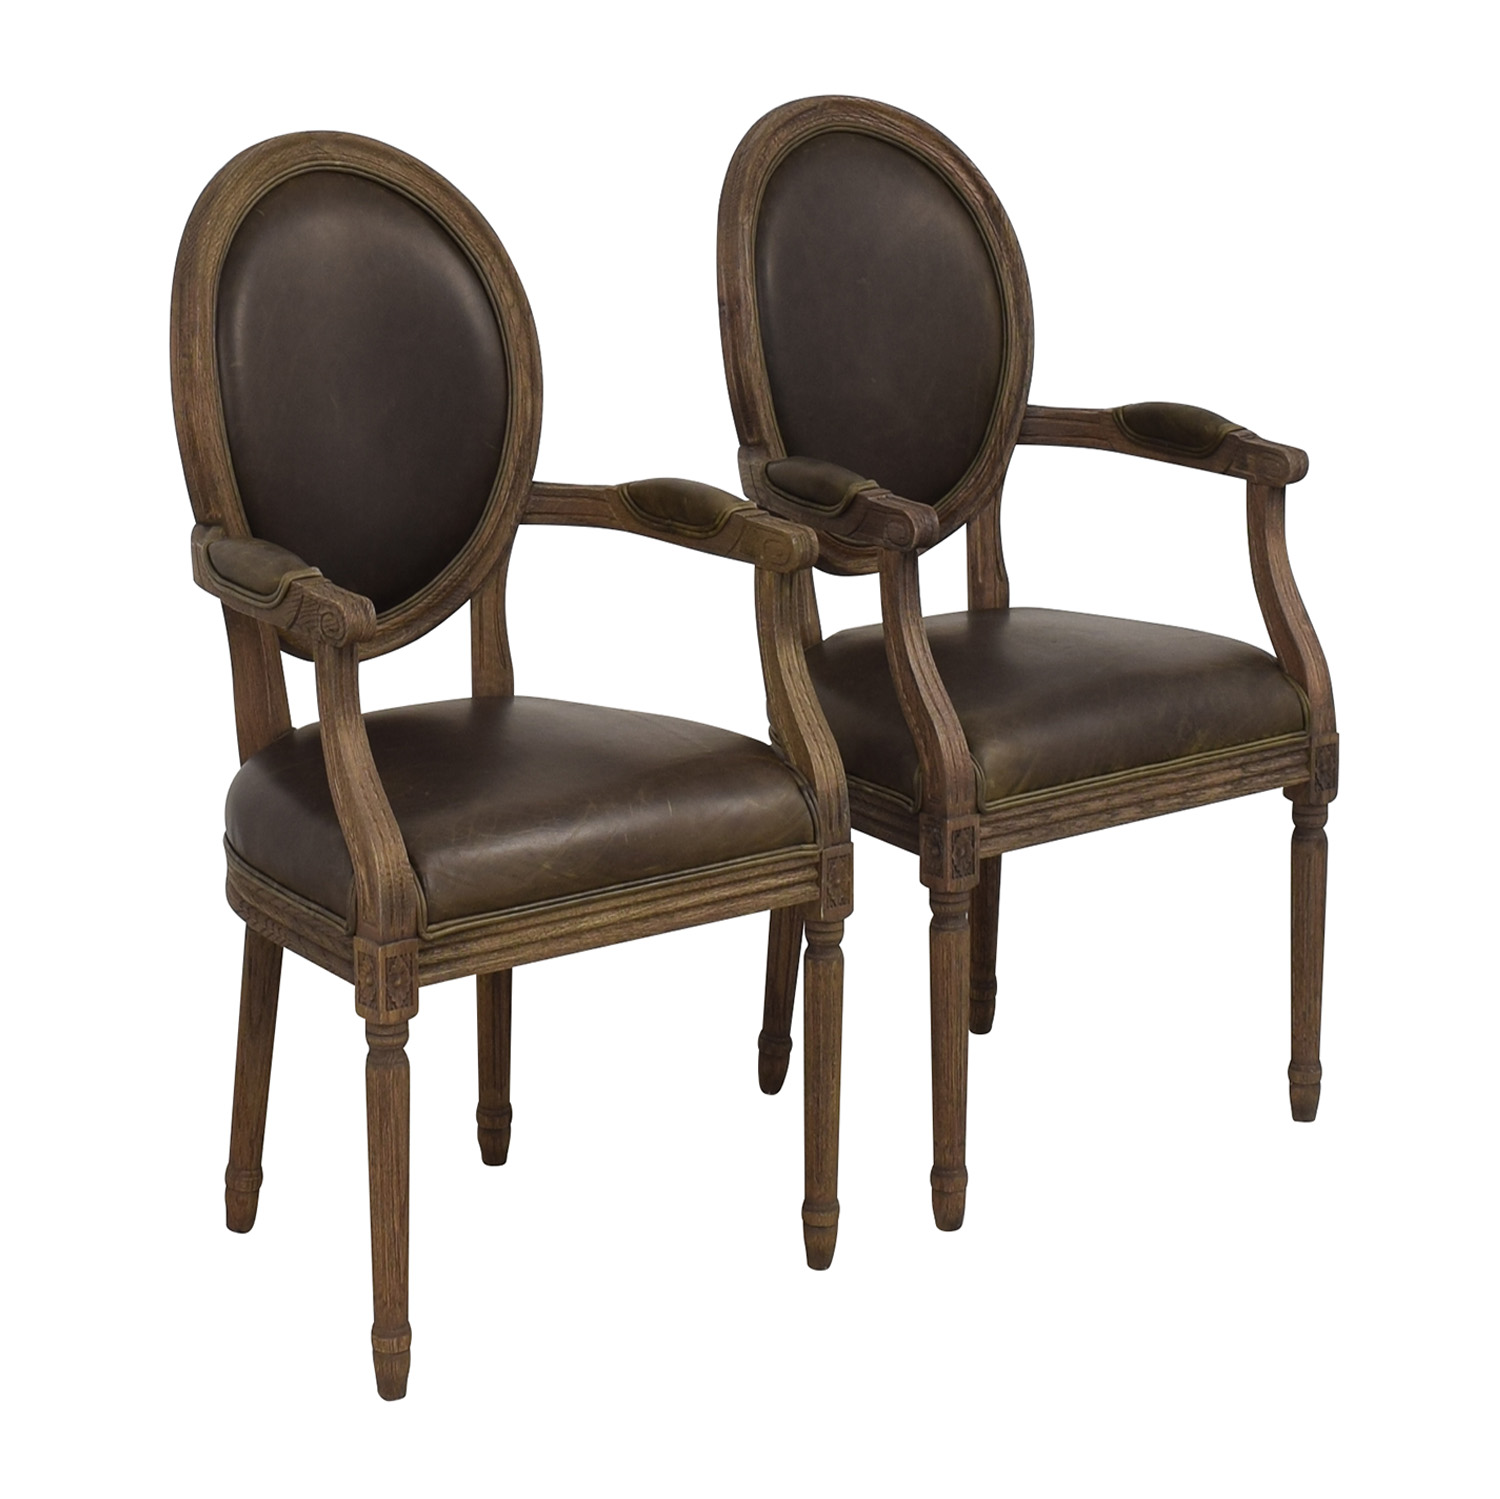 Restoration Hardware Restoration Hardware Vintage French Round Leather Armchairs ct